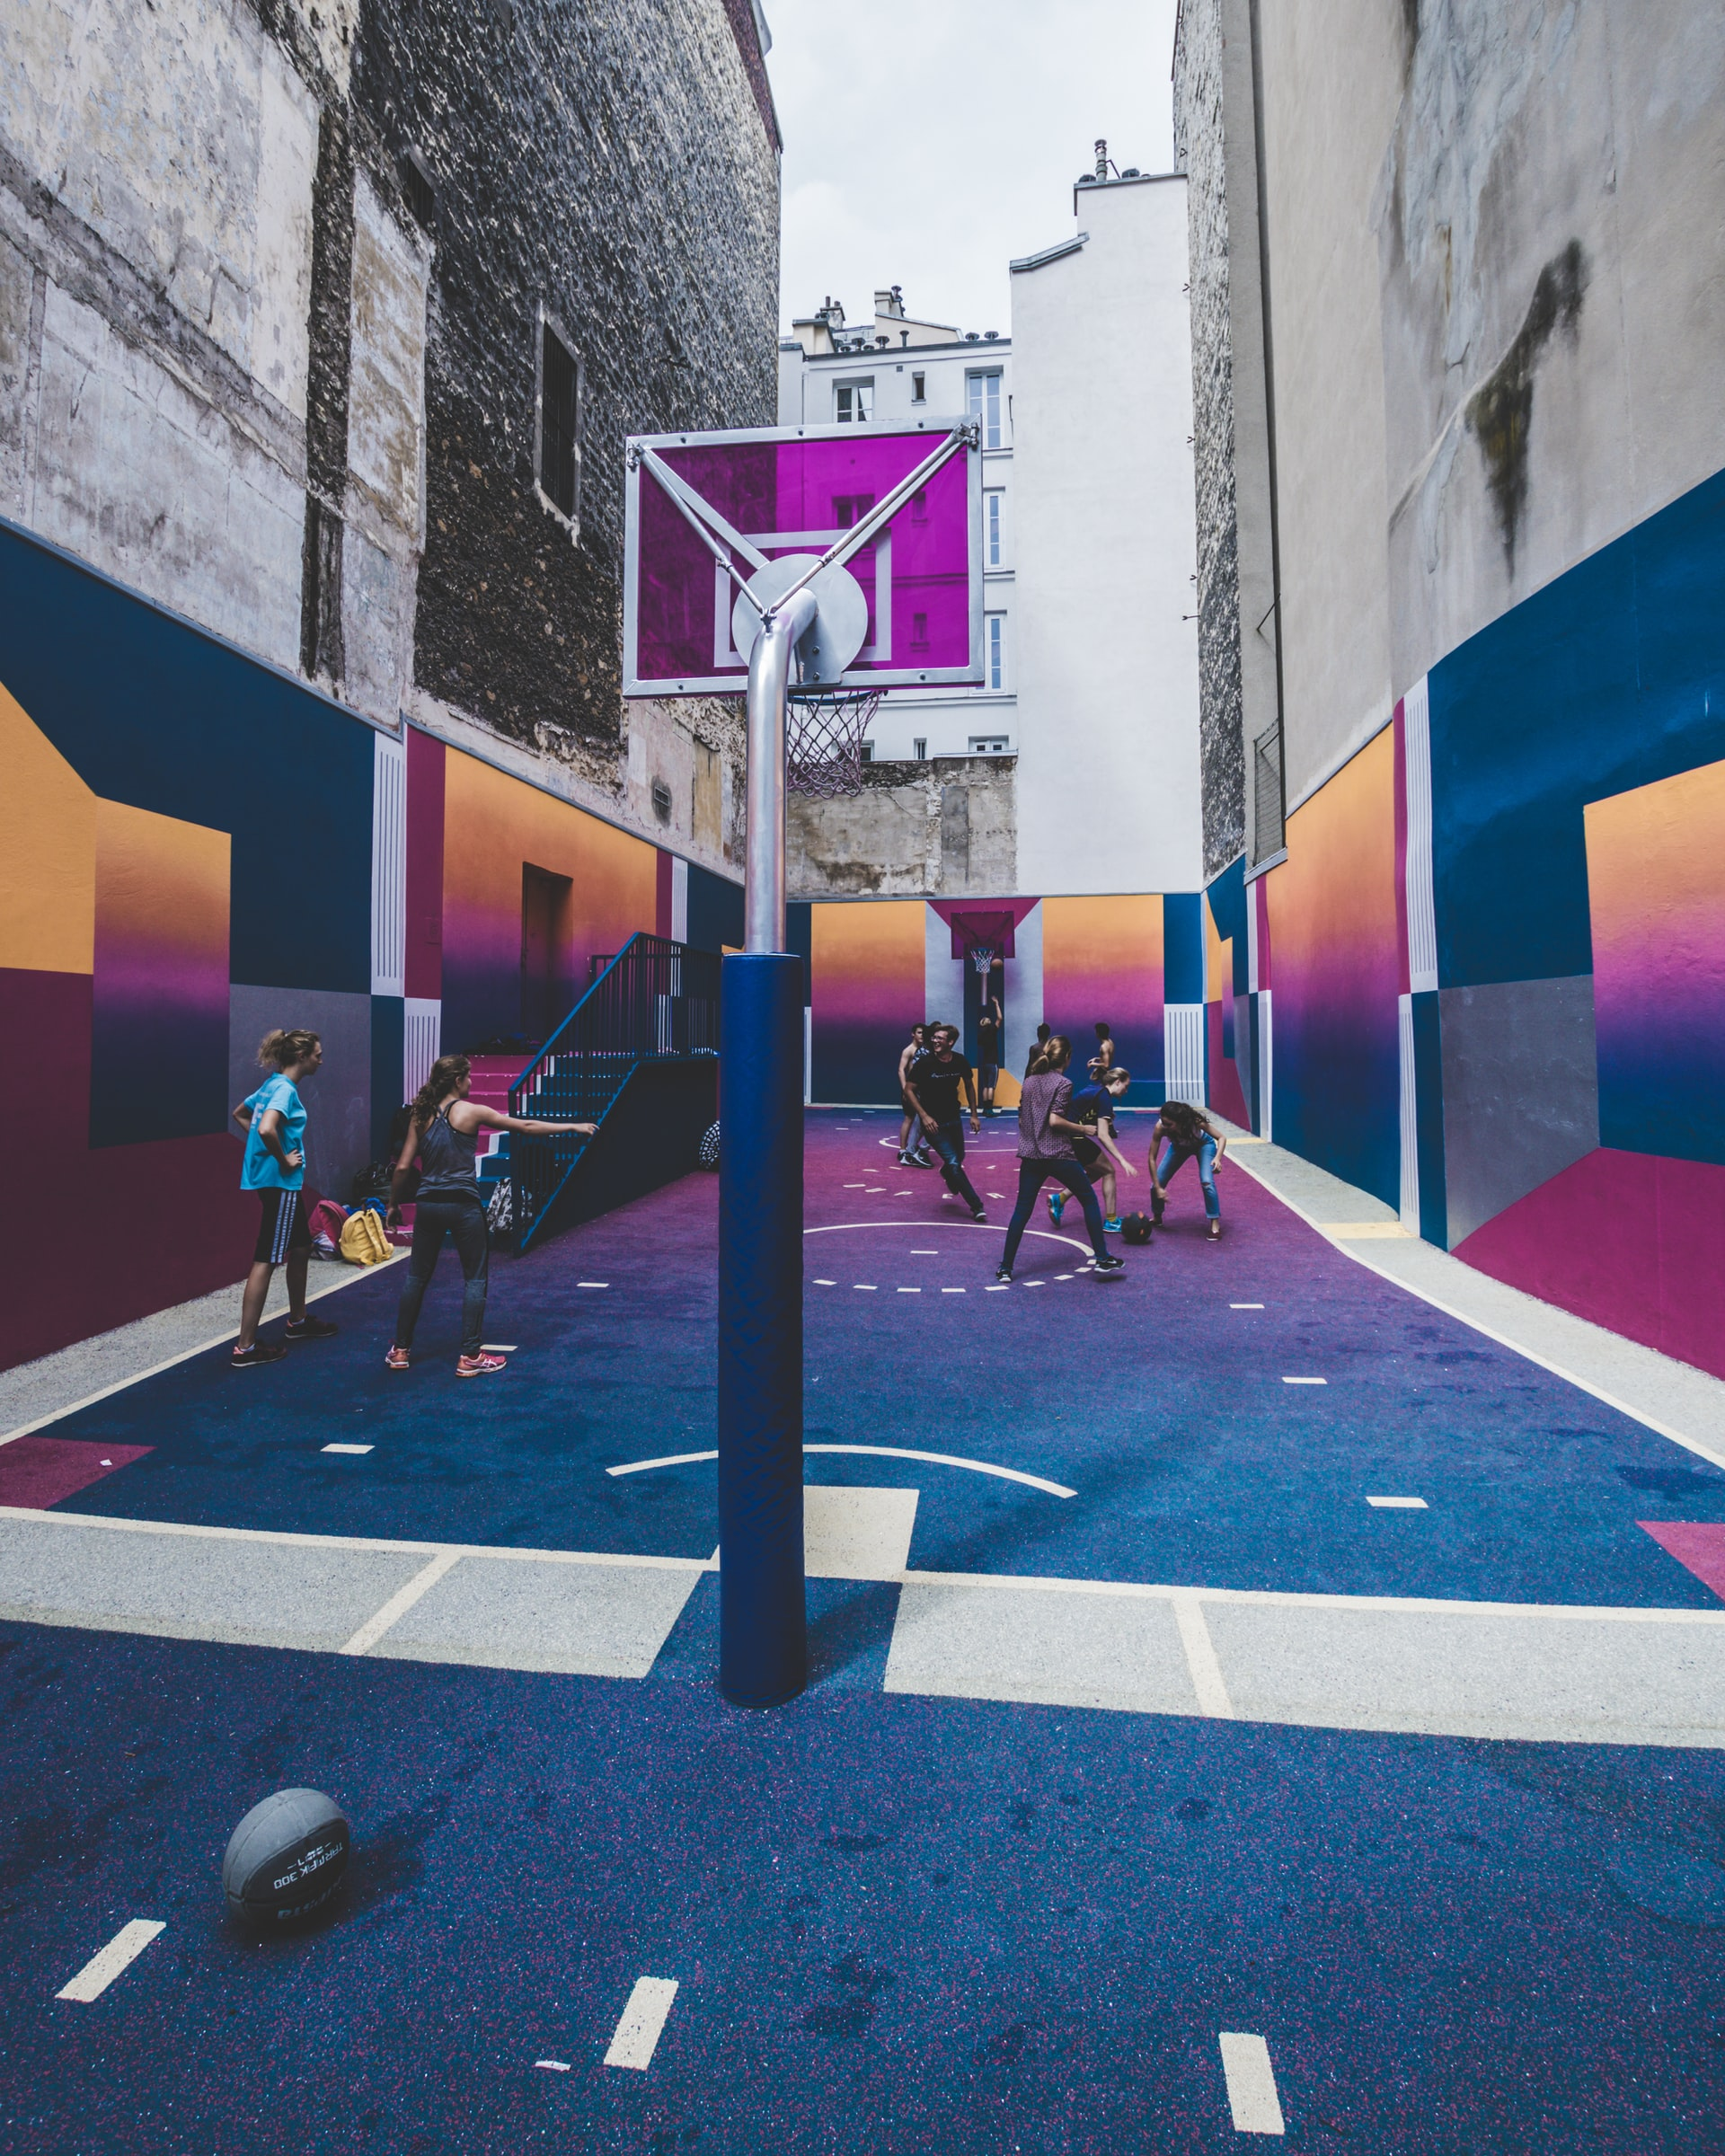 USA TODAY Launches the Brackets Competition with AR Hoops Experience